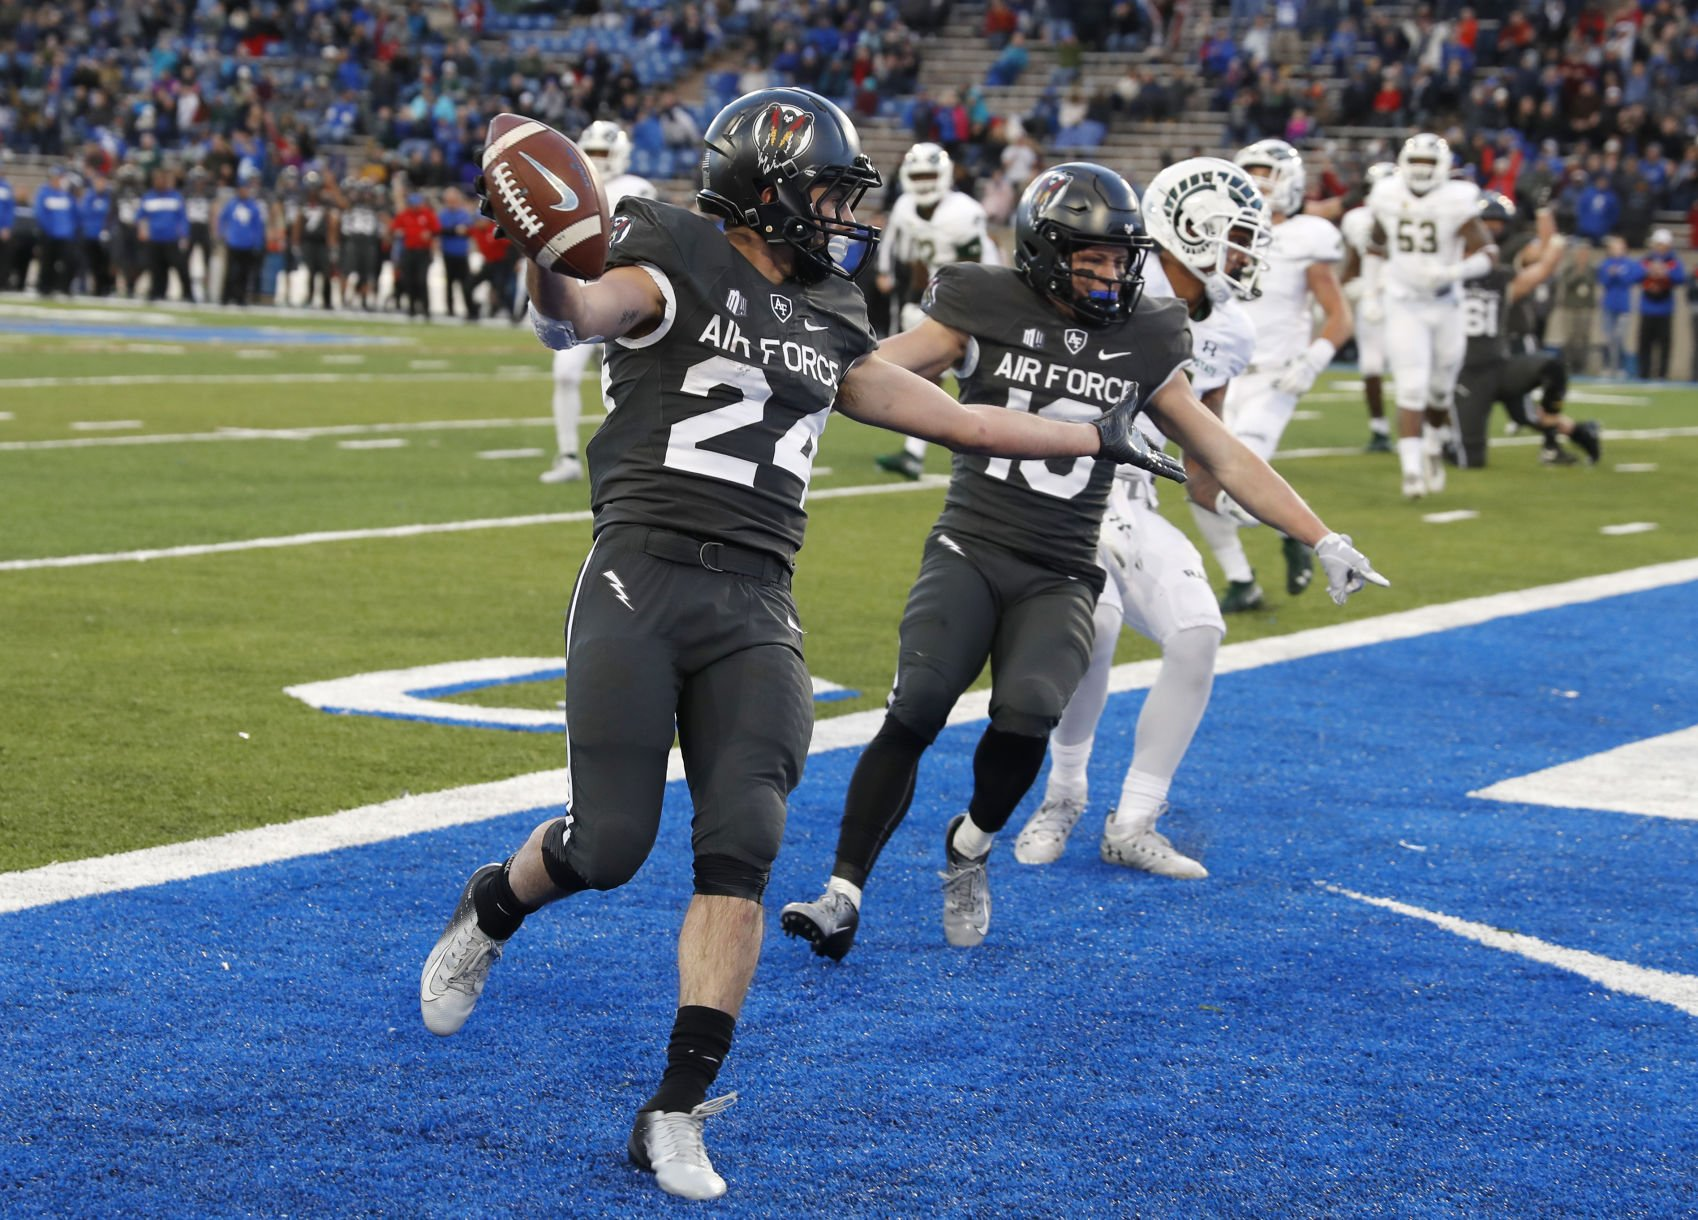 Air Force's investment in young roster could pay dividends